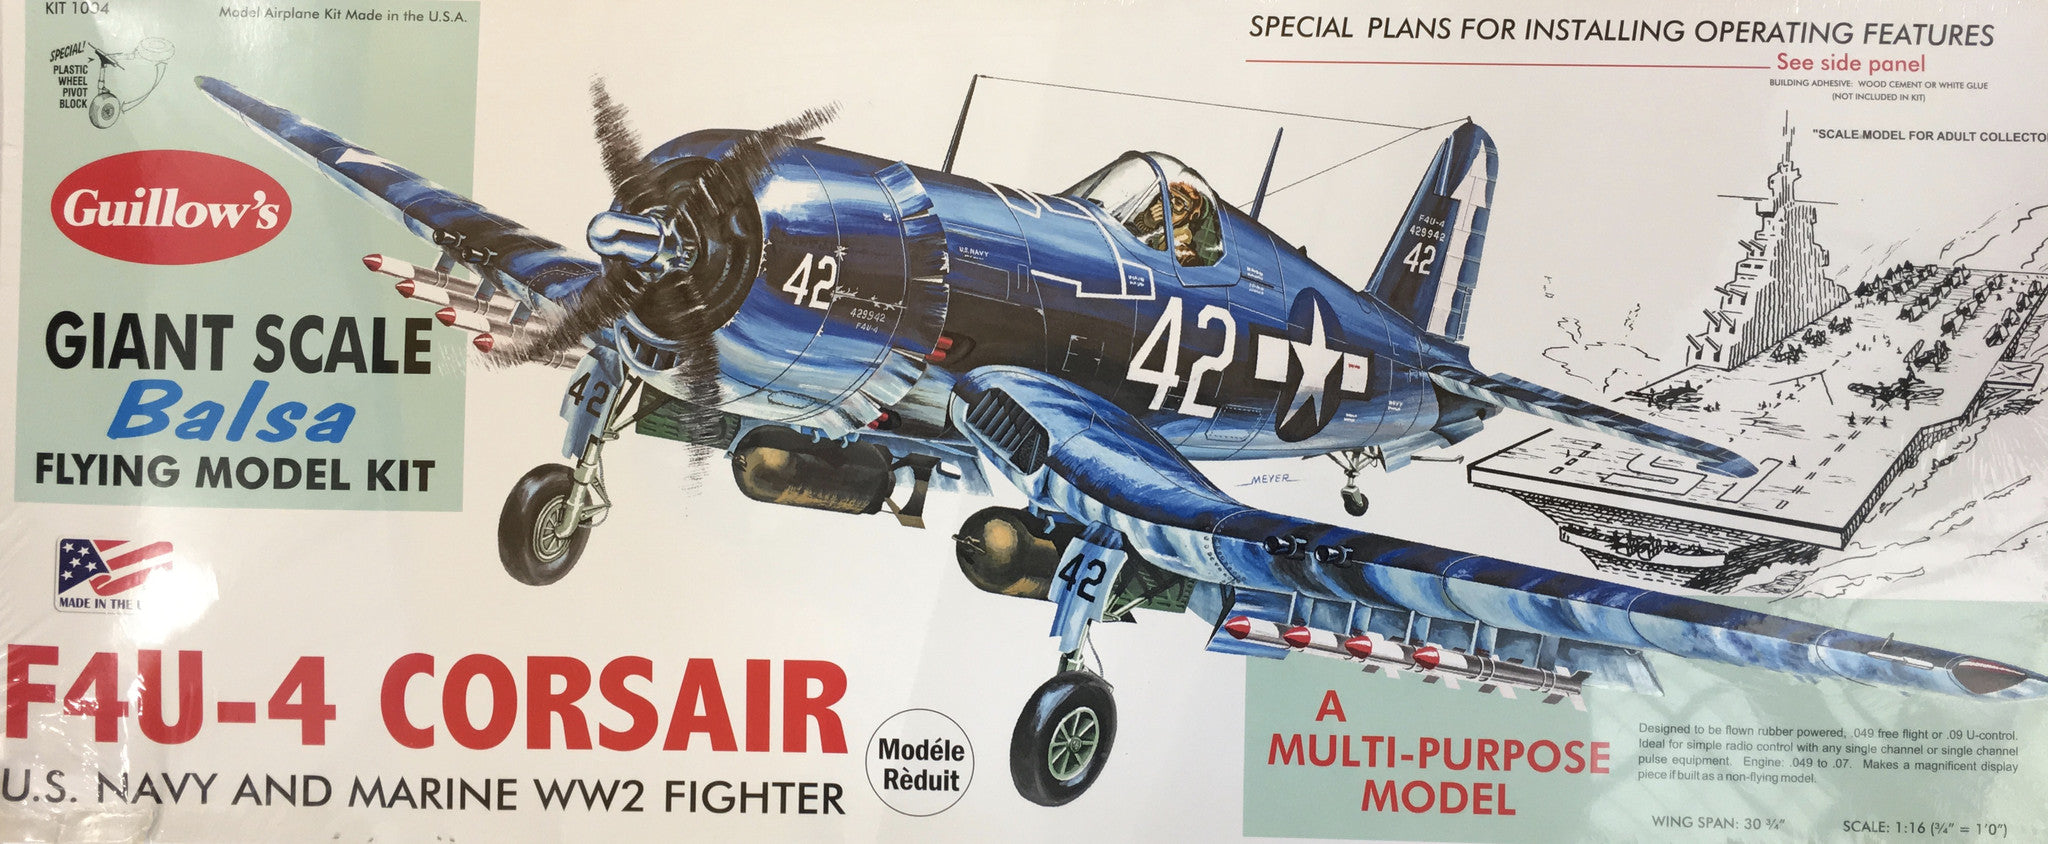 F4U Corsair Giant Scale Balsa Flying Model Kit